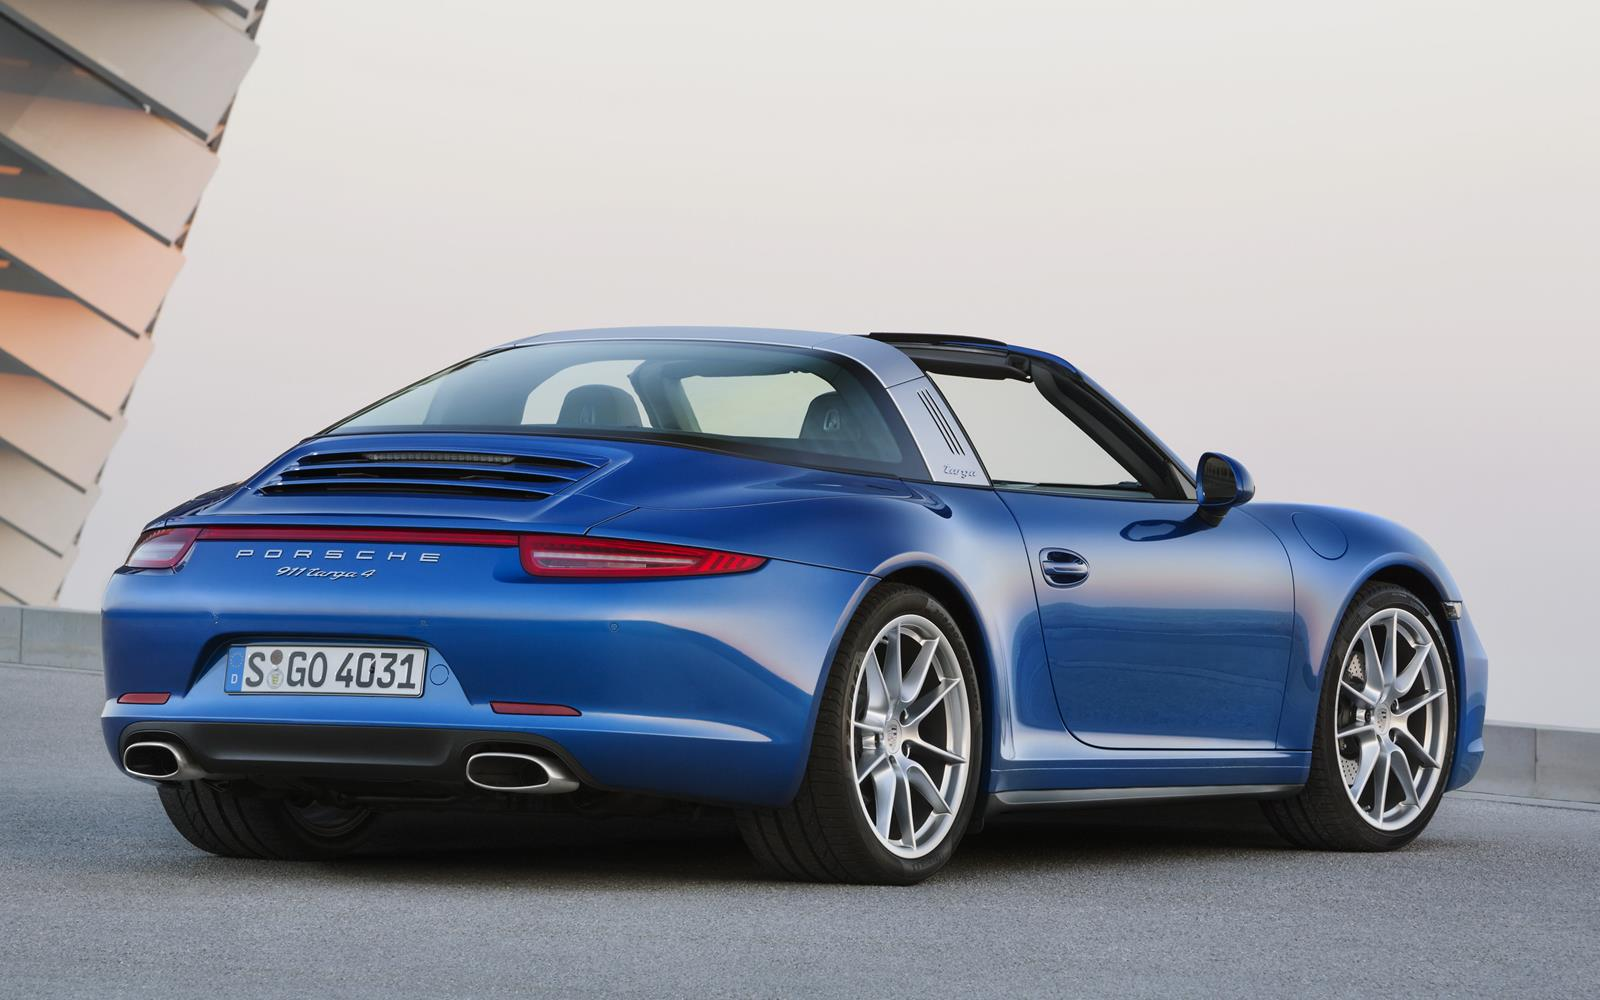 Porsche 911 Targa 4 2015 Rear Roof Open